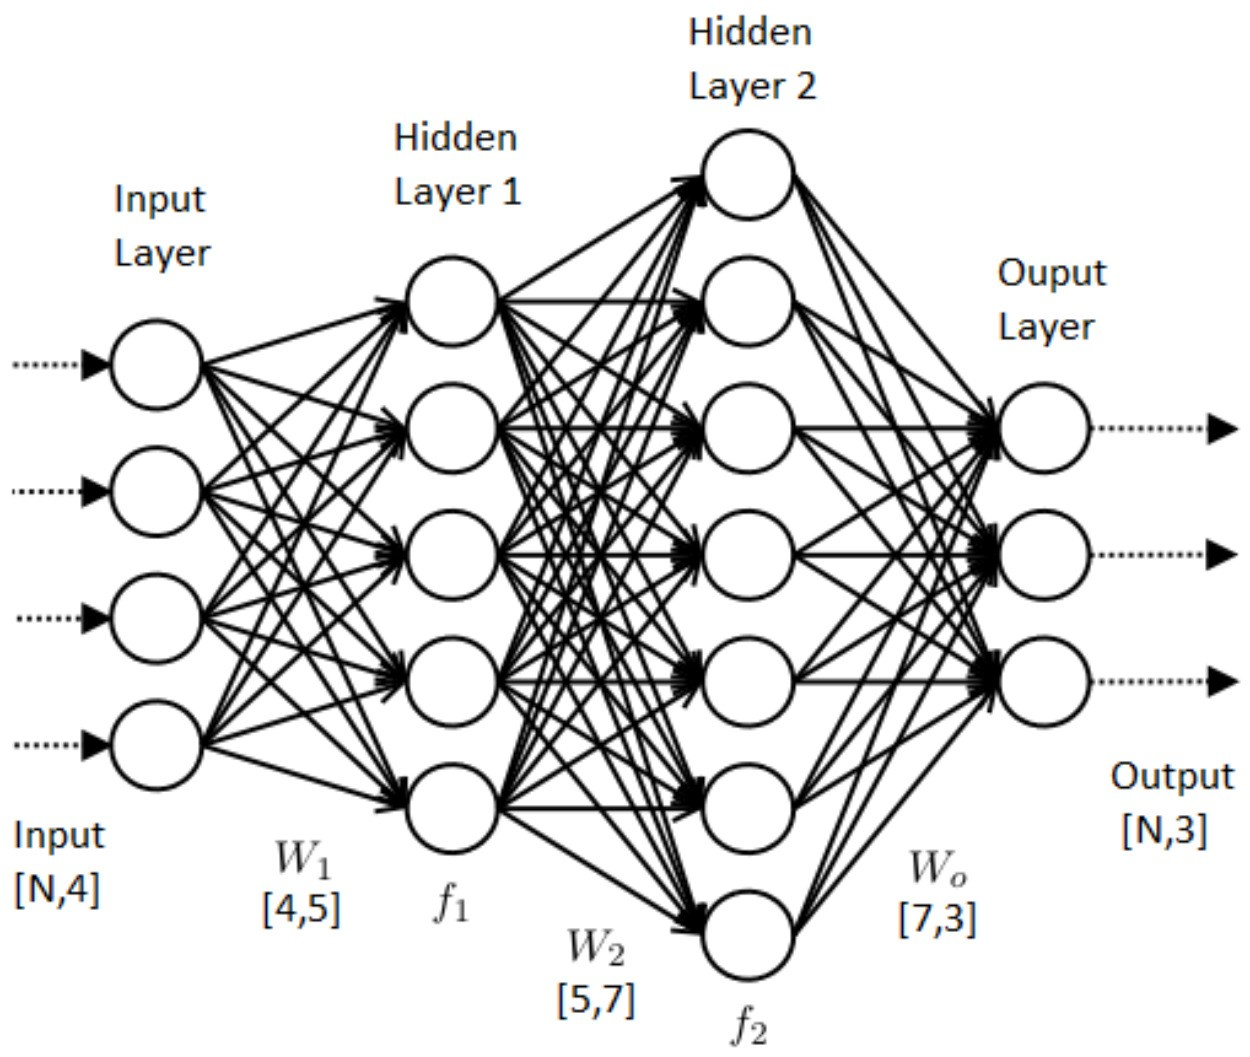 hat is Deep Learning